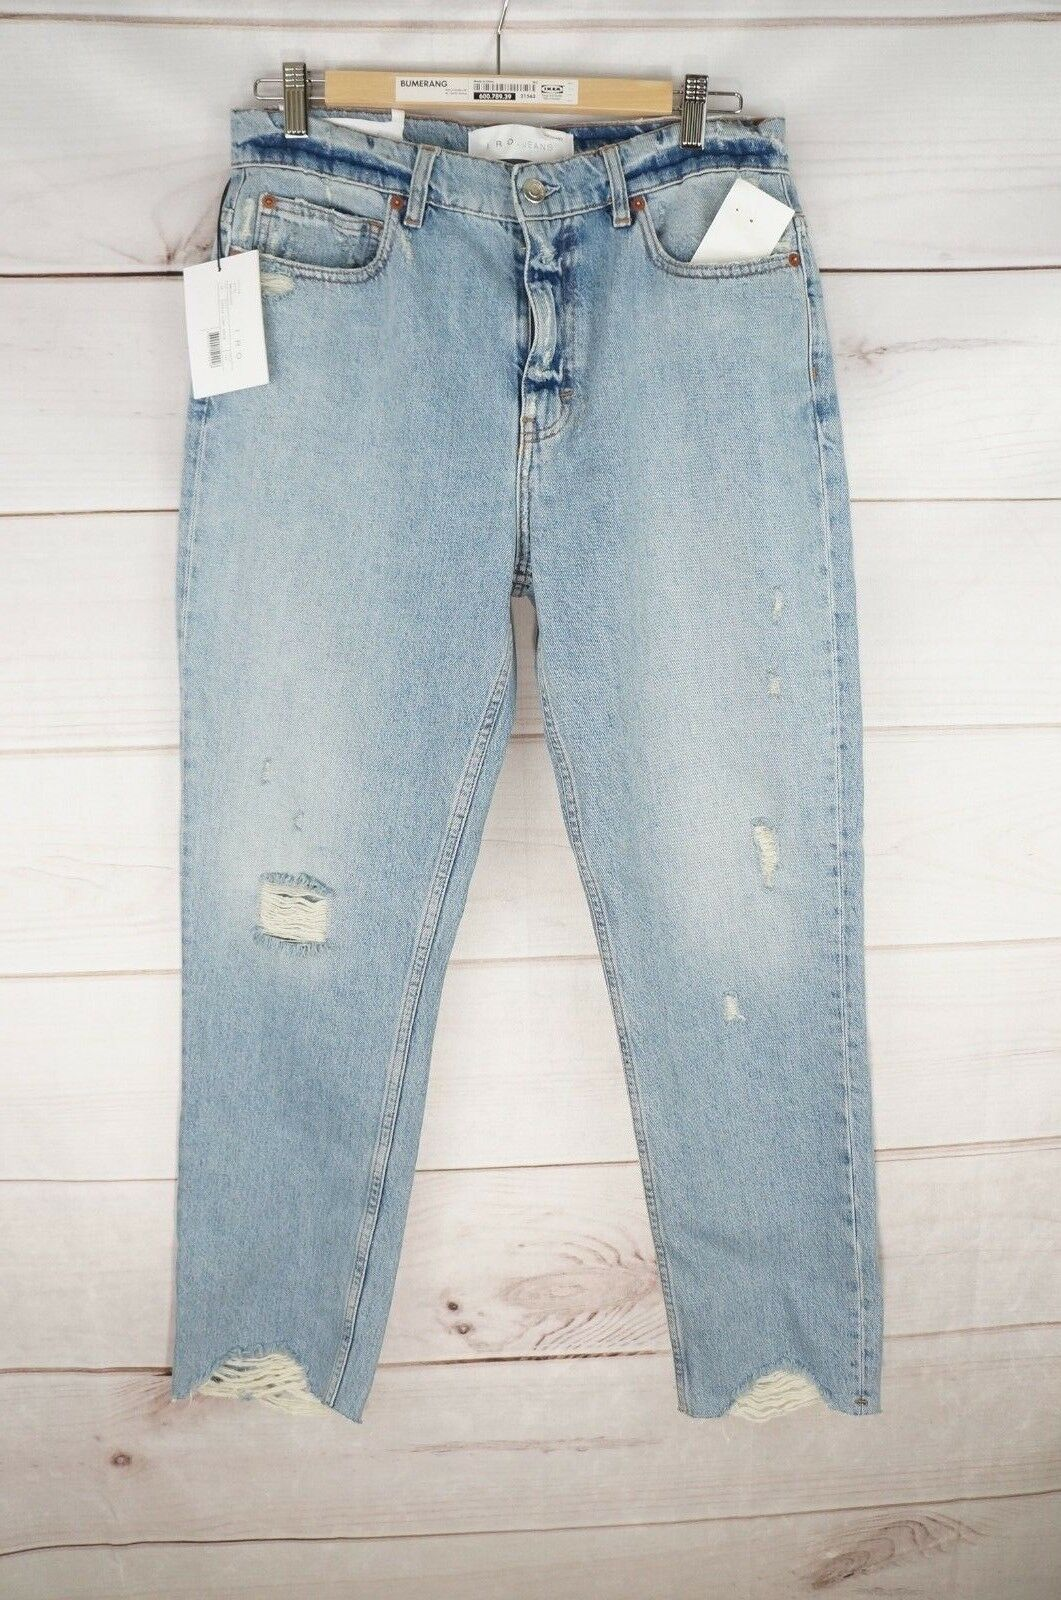 NWT IRO Jeans Womens High Rise Boyfriend Distressed Raw Hem Straight Leg Mom